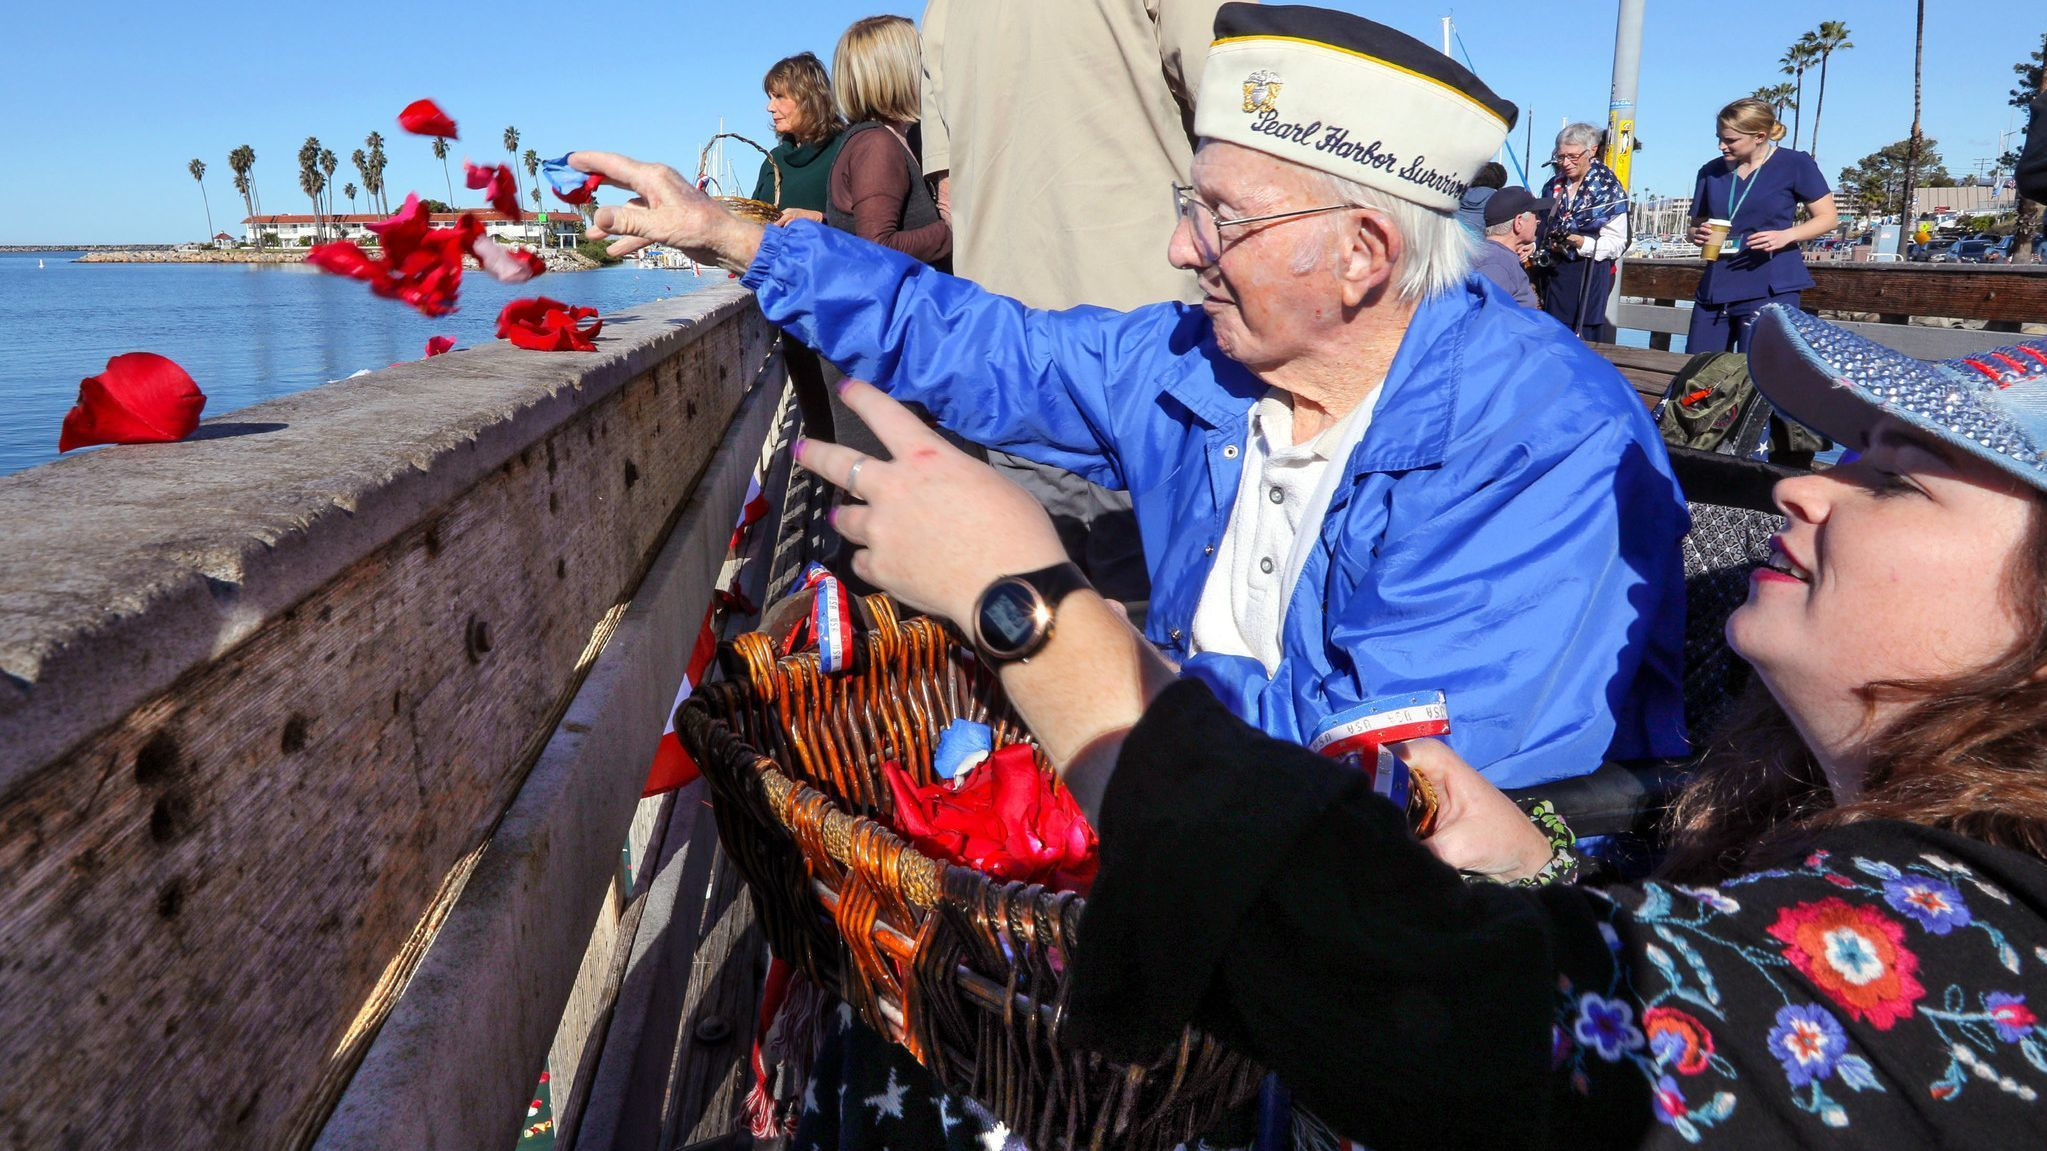 John Quier, one of county's few remaining Pearl Harbor veterans, has died